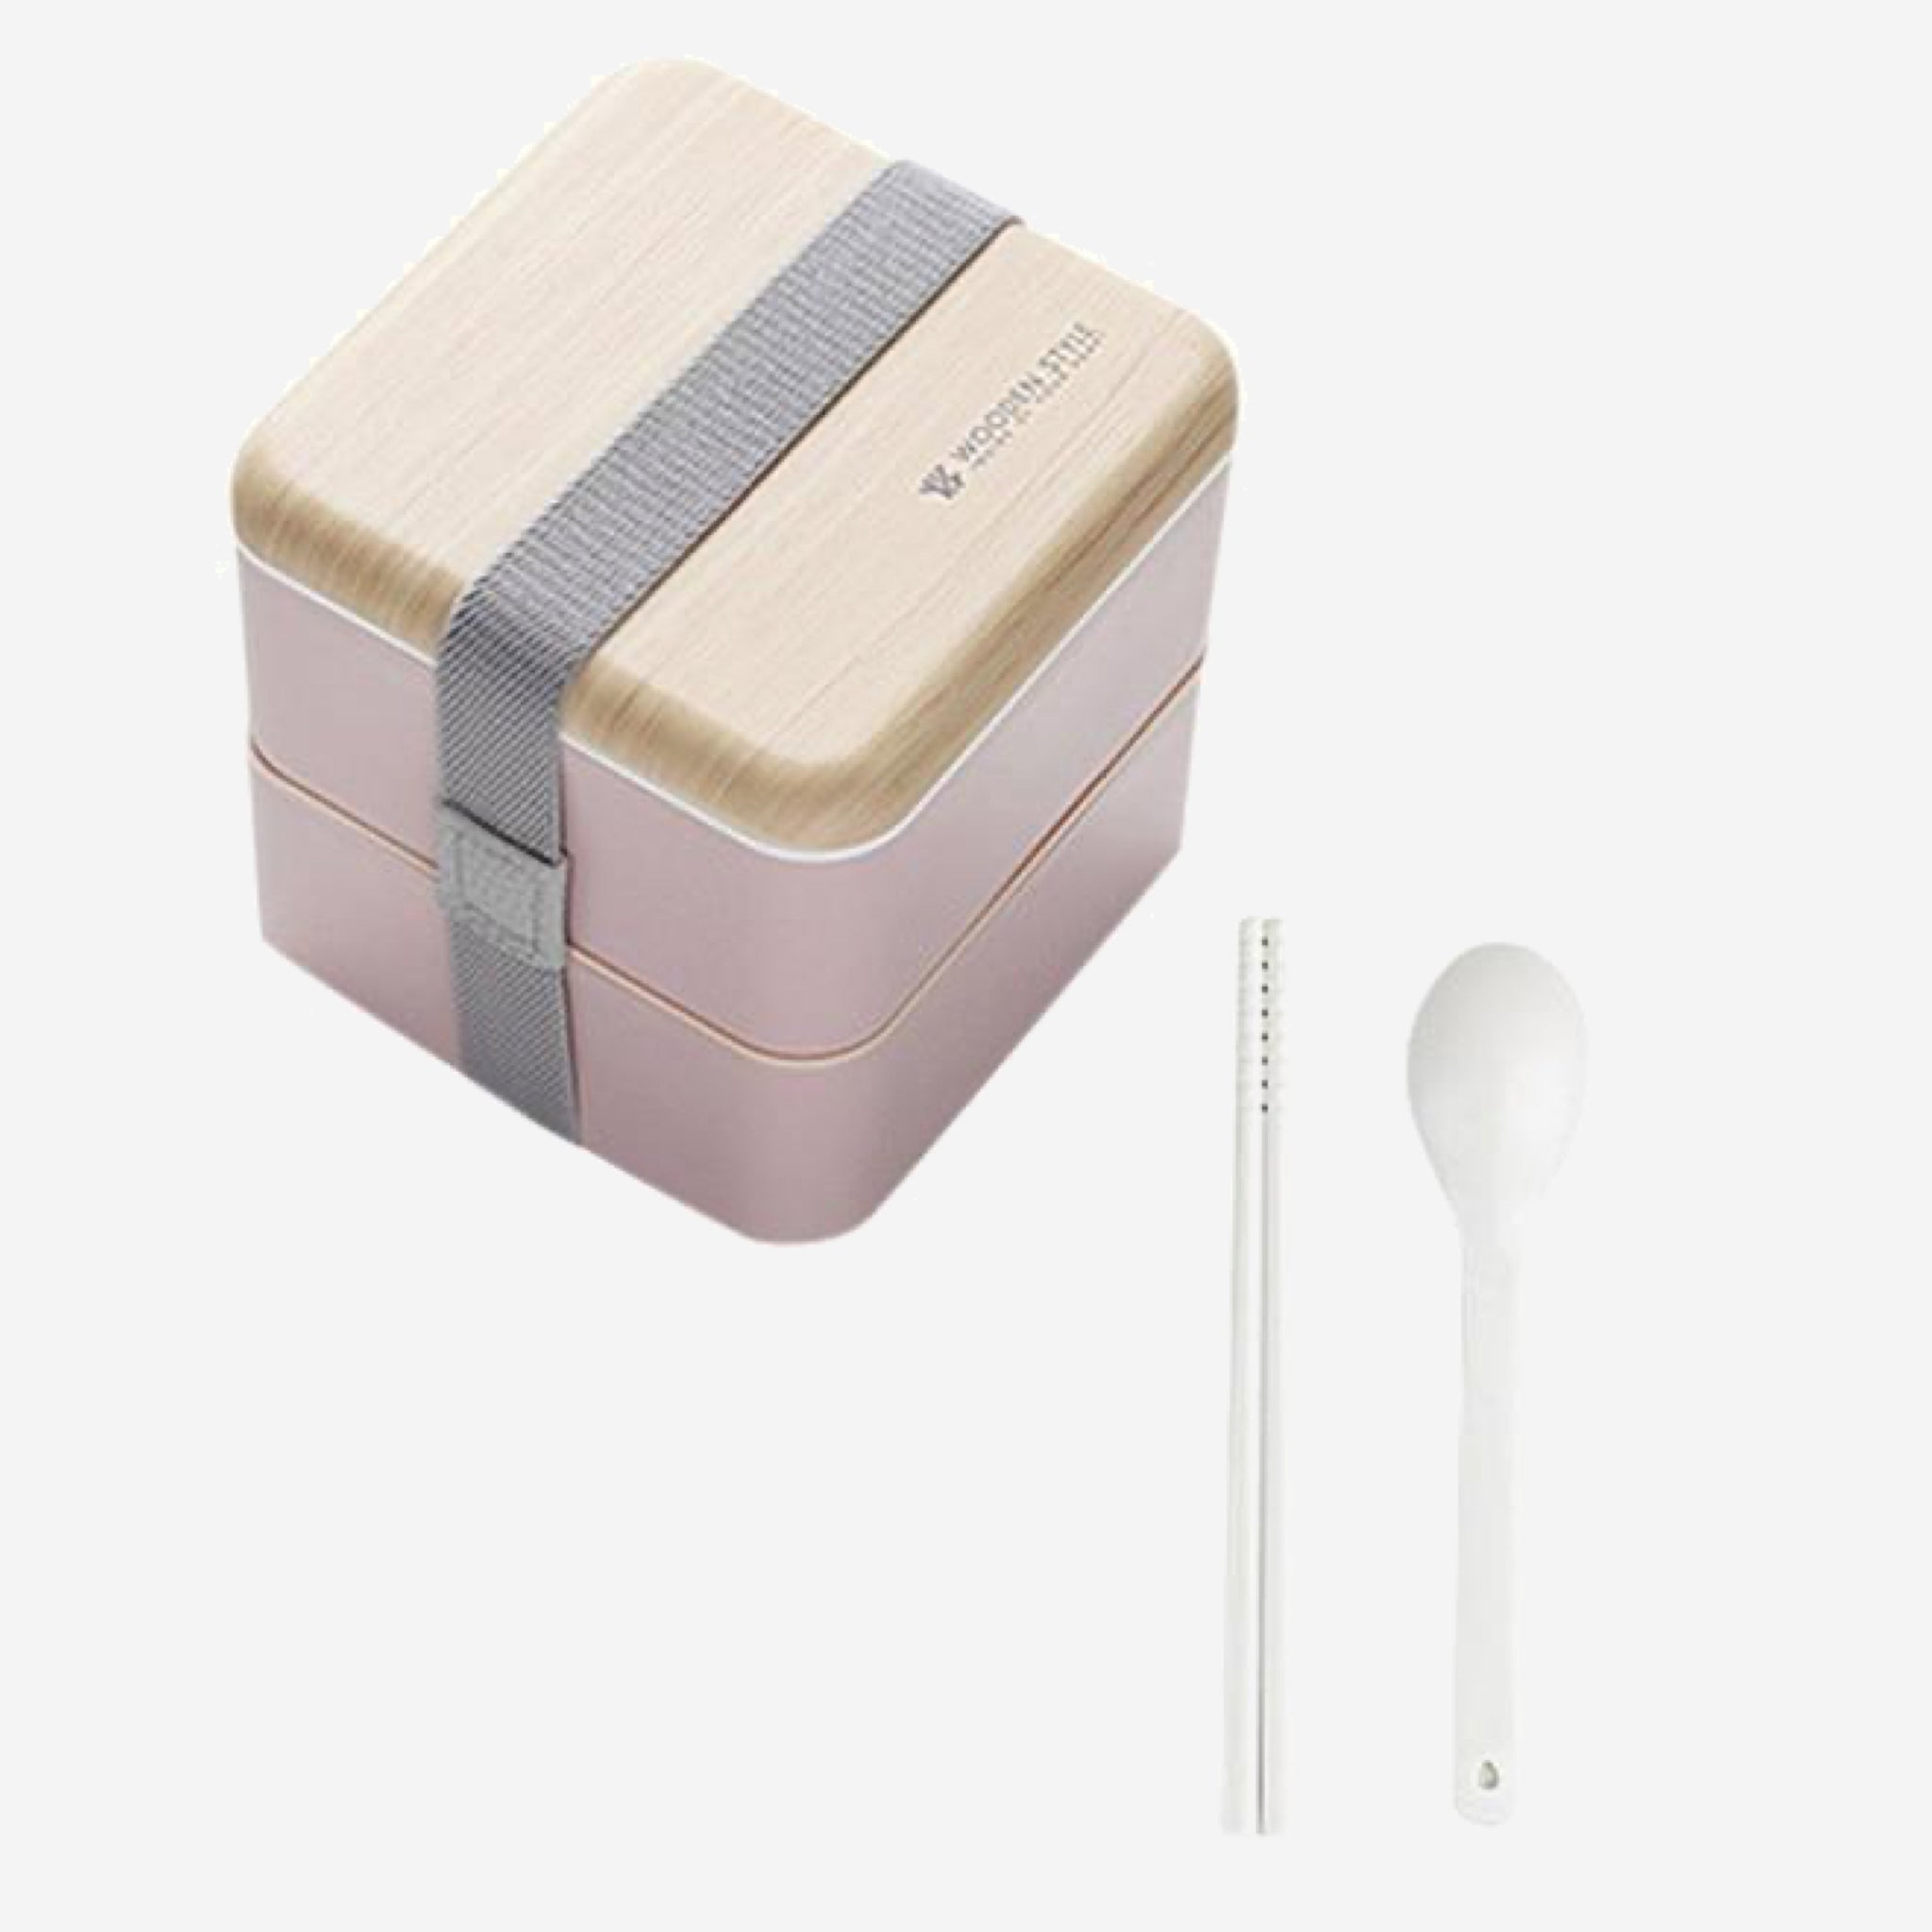 Bento Lunch Box 2-Layer   Japanese Microwave Food Container Storage Case with Spoon and Chopsticks Japan meal boxes Color Pink Trend